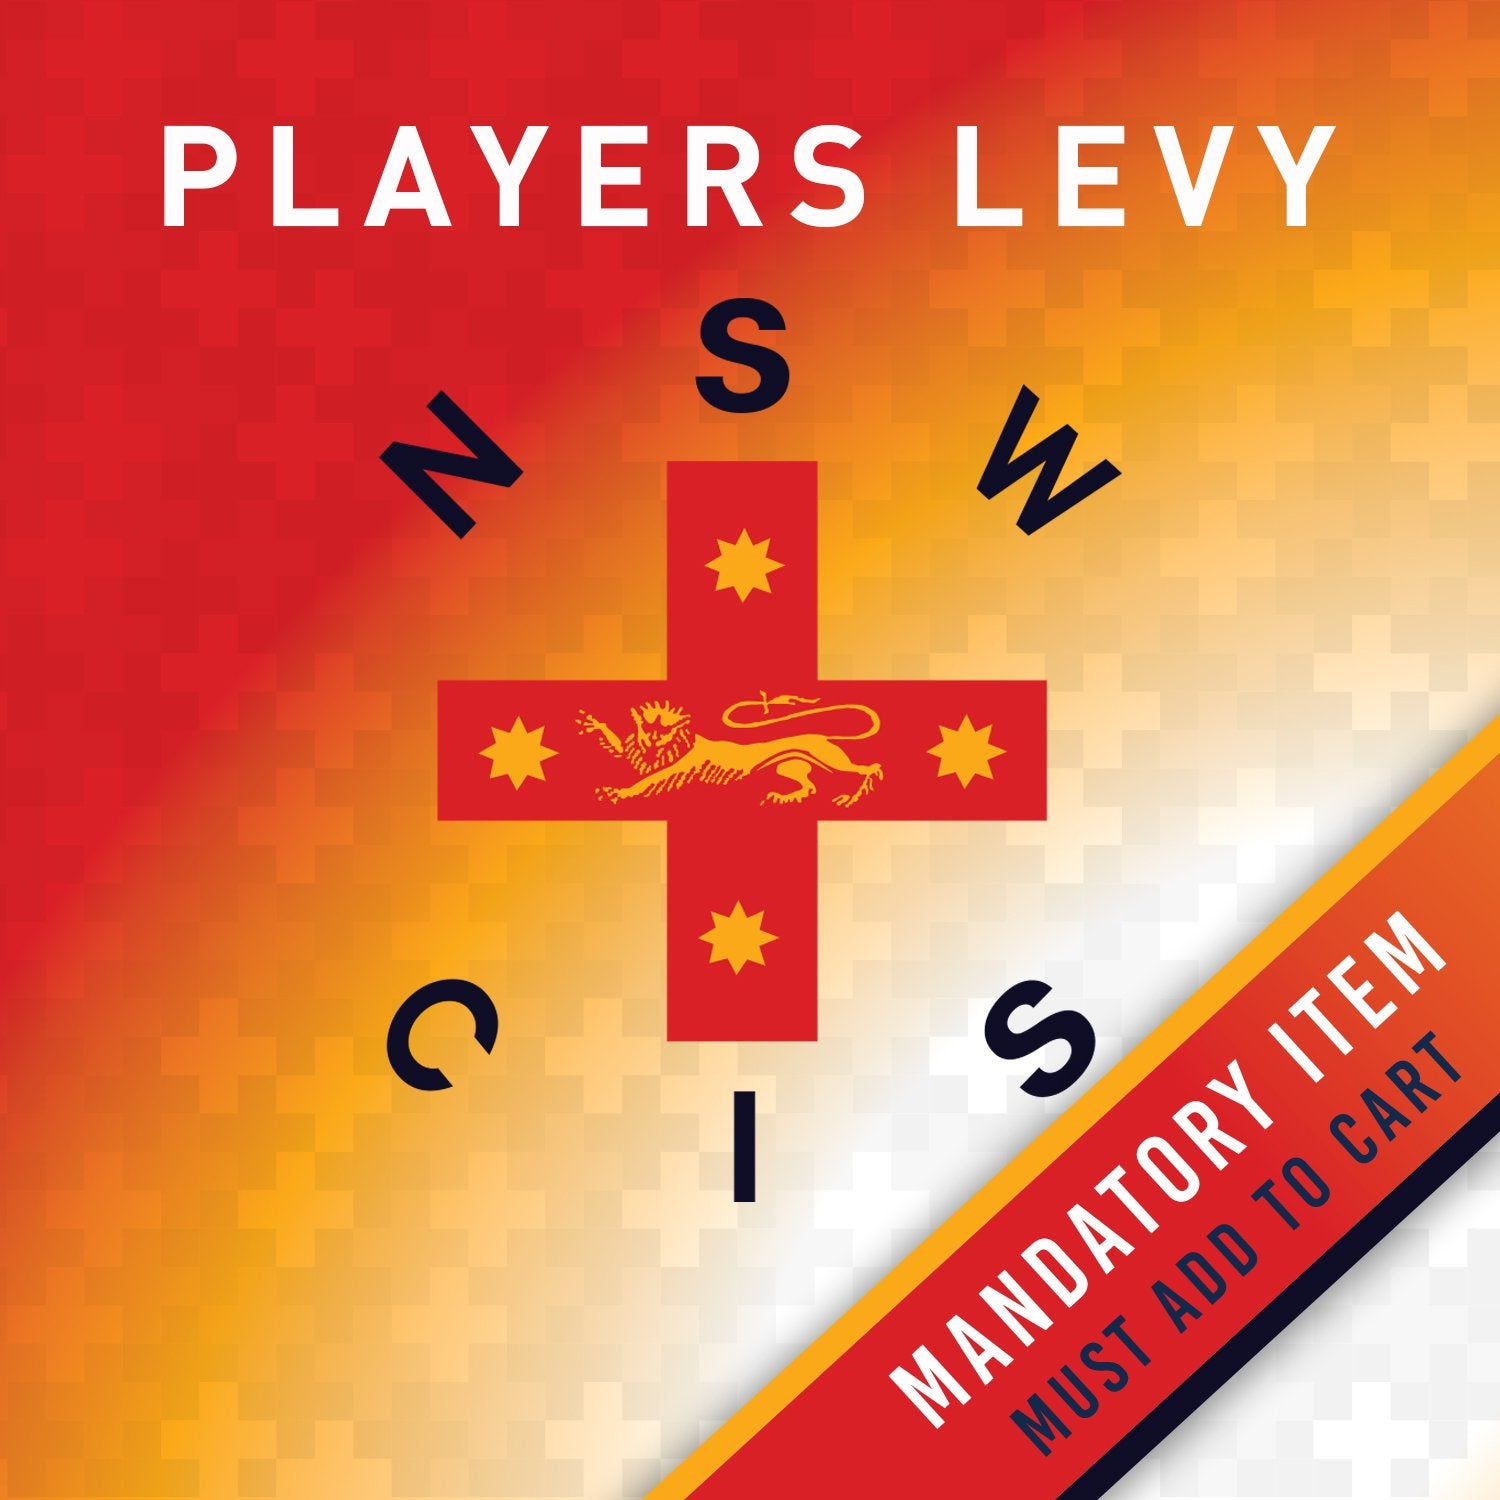 MANDATORY ITEM - PLAYERS LEVY - NSW CIS Secondary Girls 17 & Under Water Polo